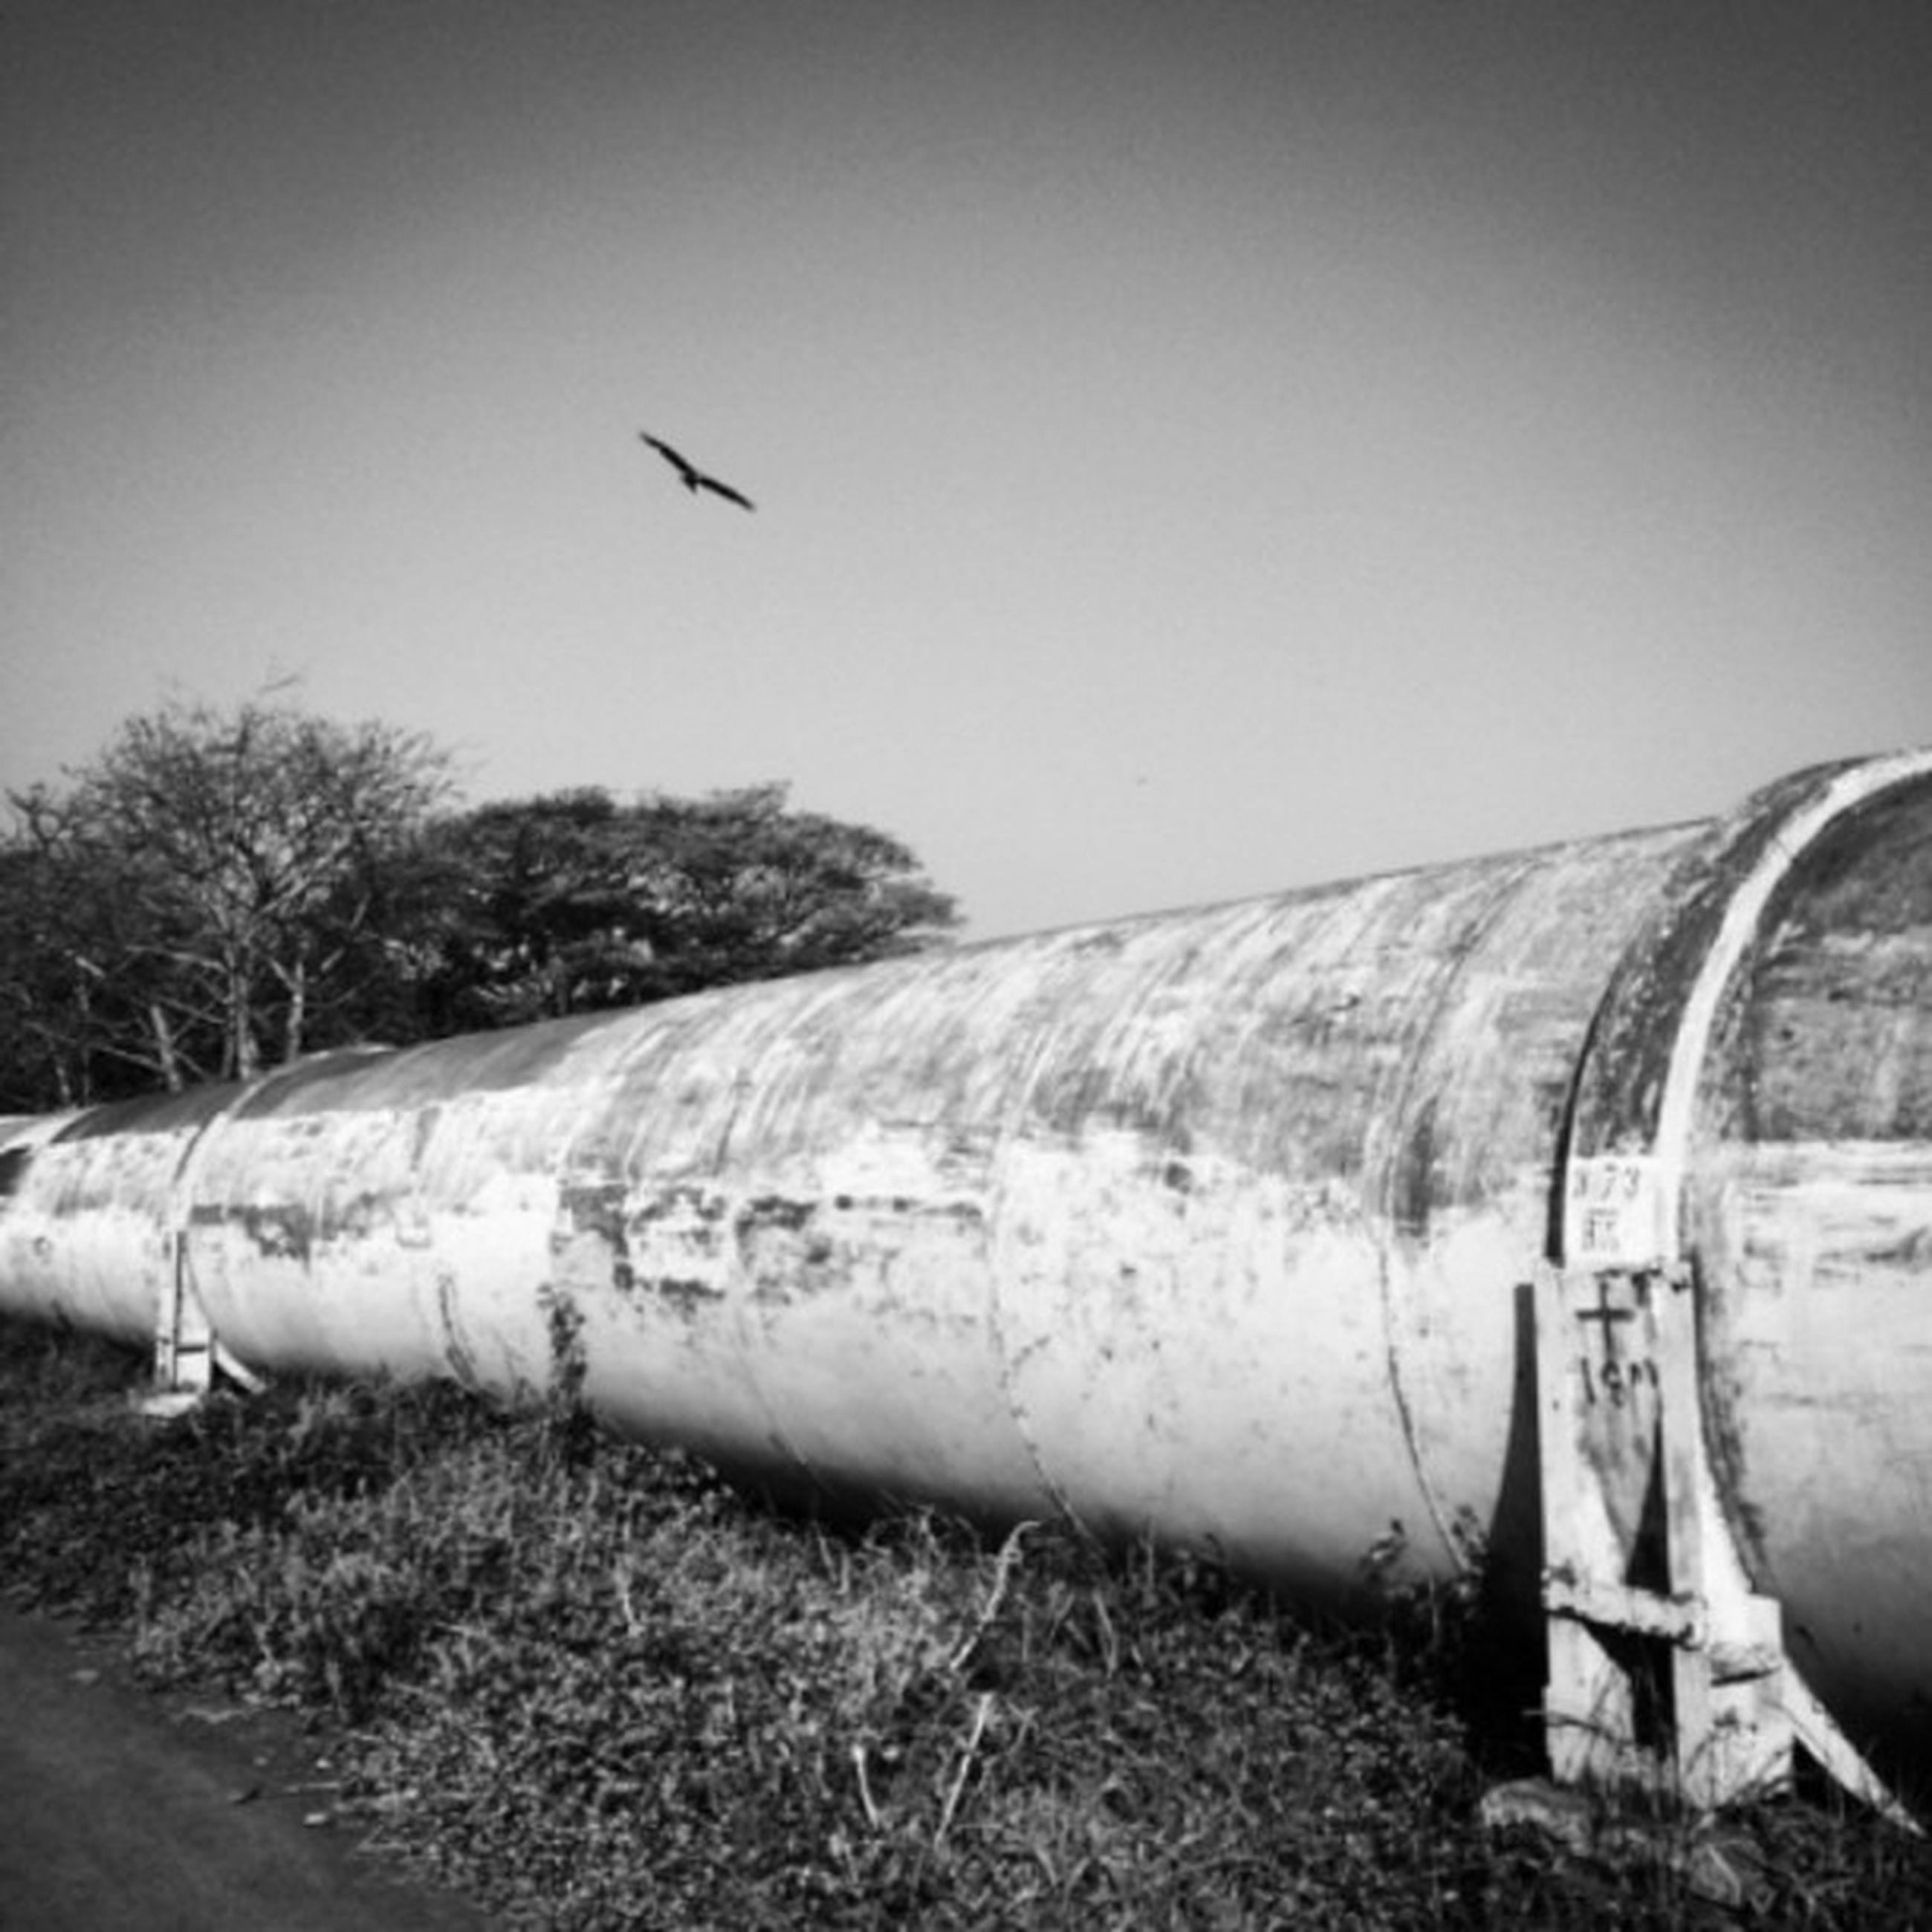 transportation, clear sky, abandoned, field, sky, built structure, old, obsolete, architecture, outdoors, tree, landscape, damaged, day, no people, deterioration, mode of transport, history, run-down, rural scene